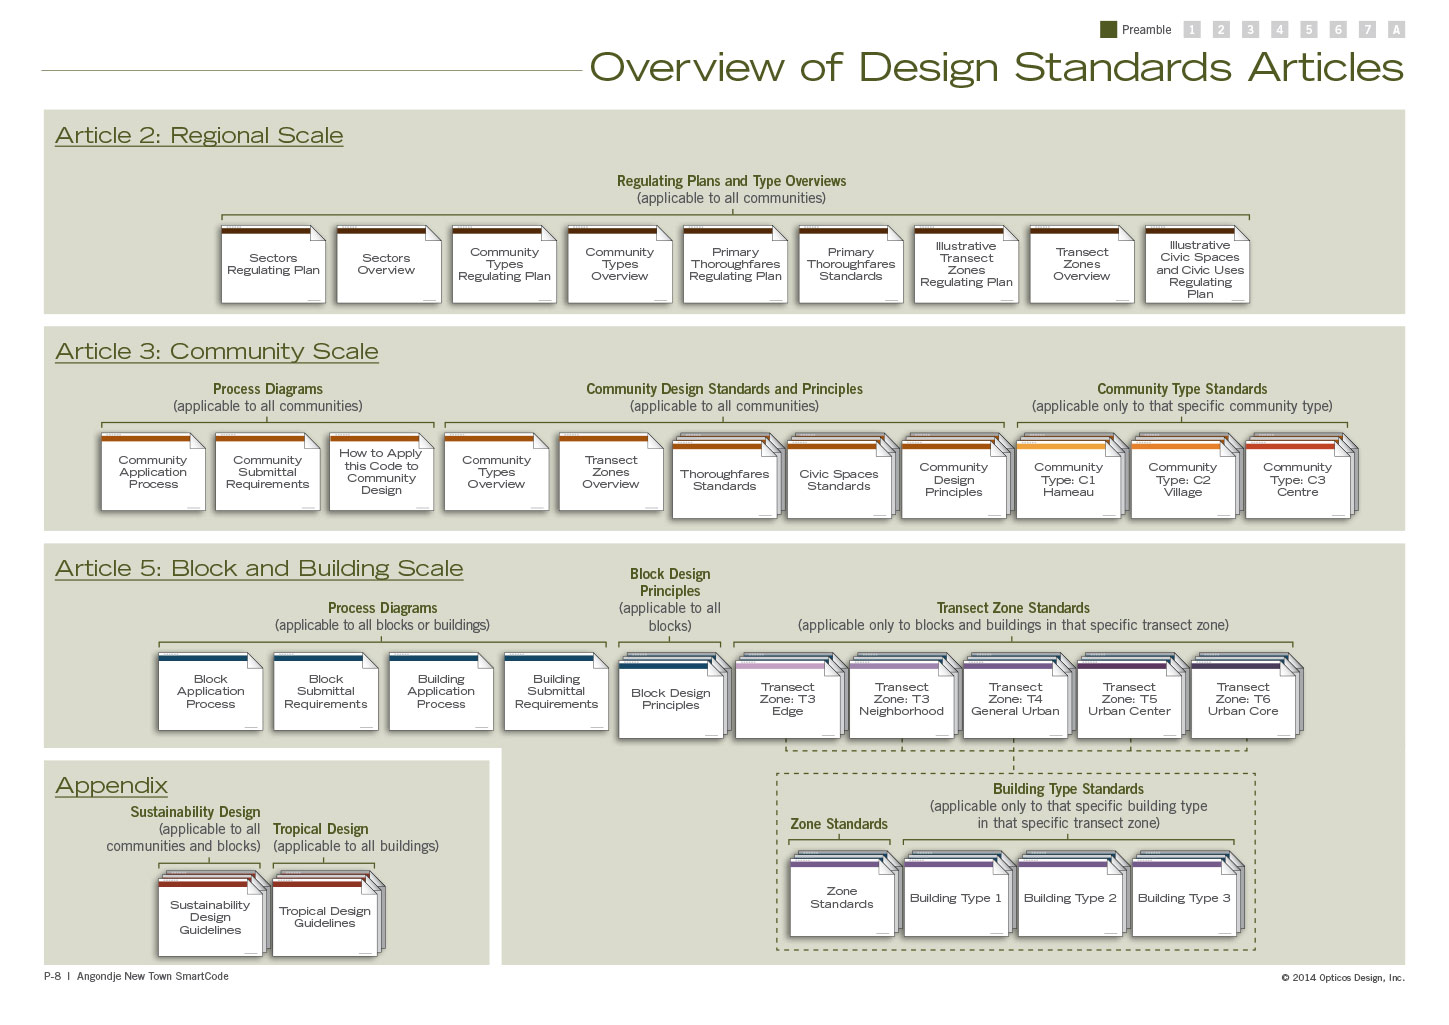 Overview of Design Standards Articles, showing all the different articles and how they relate to one another